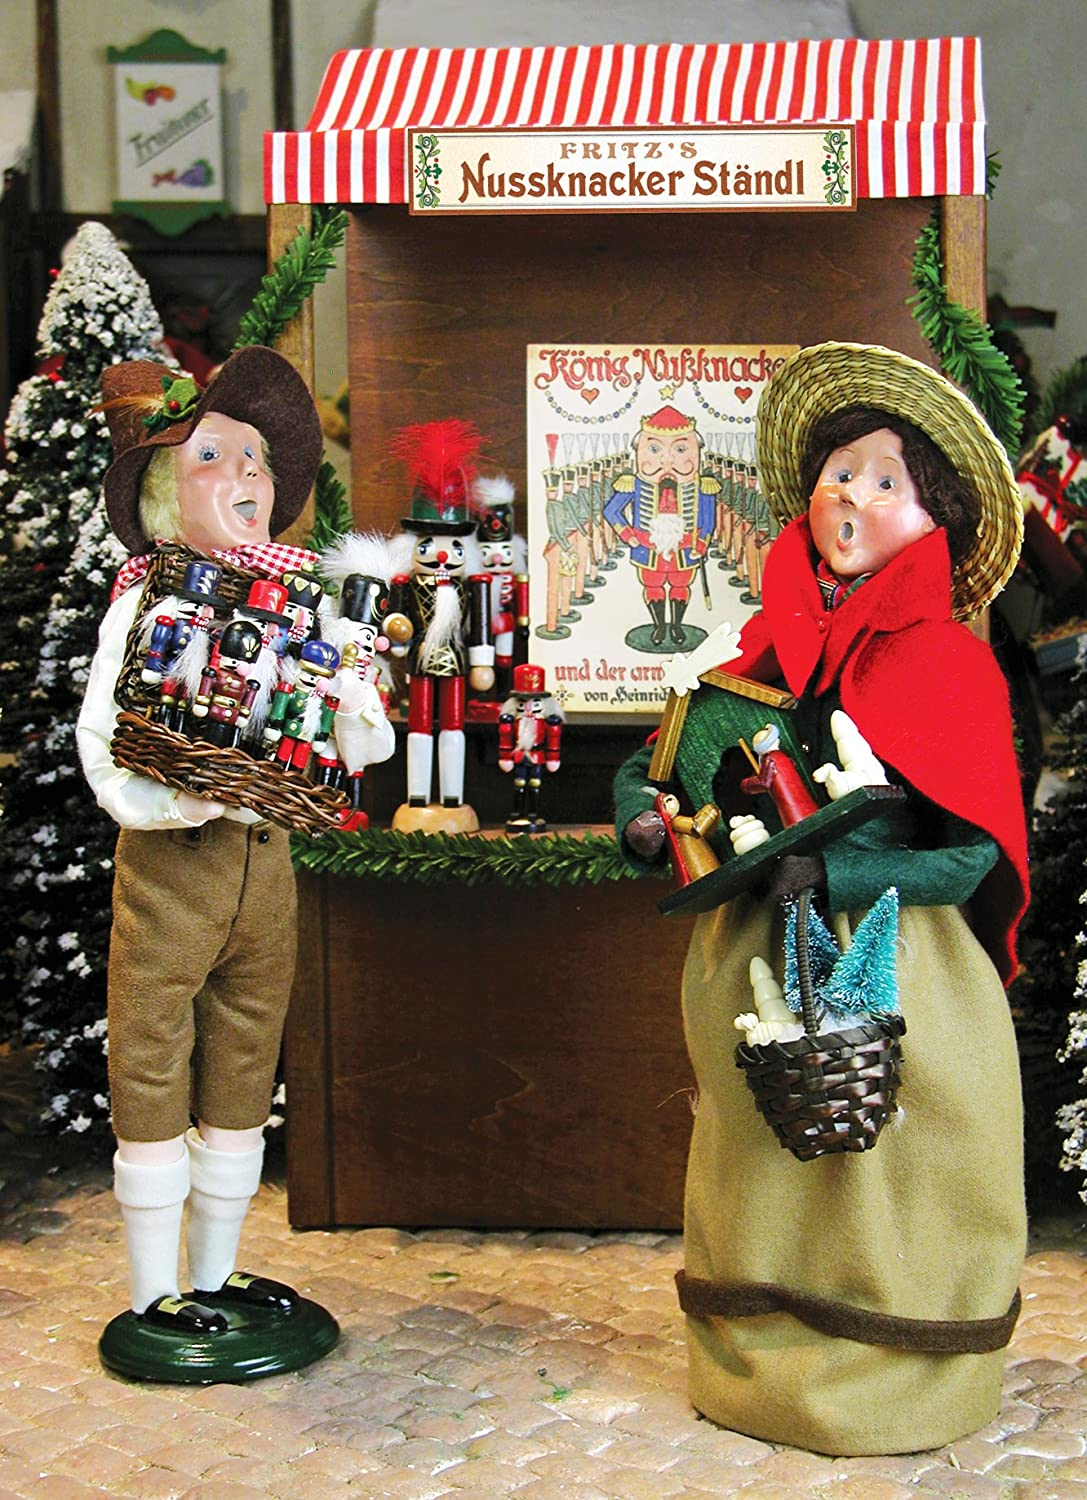 Nutcracker Peddler and Market Shopper